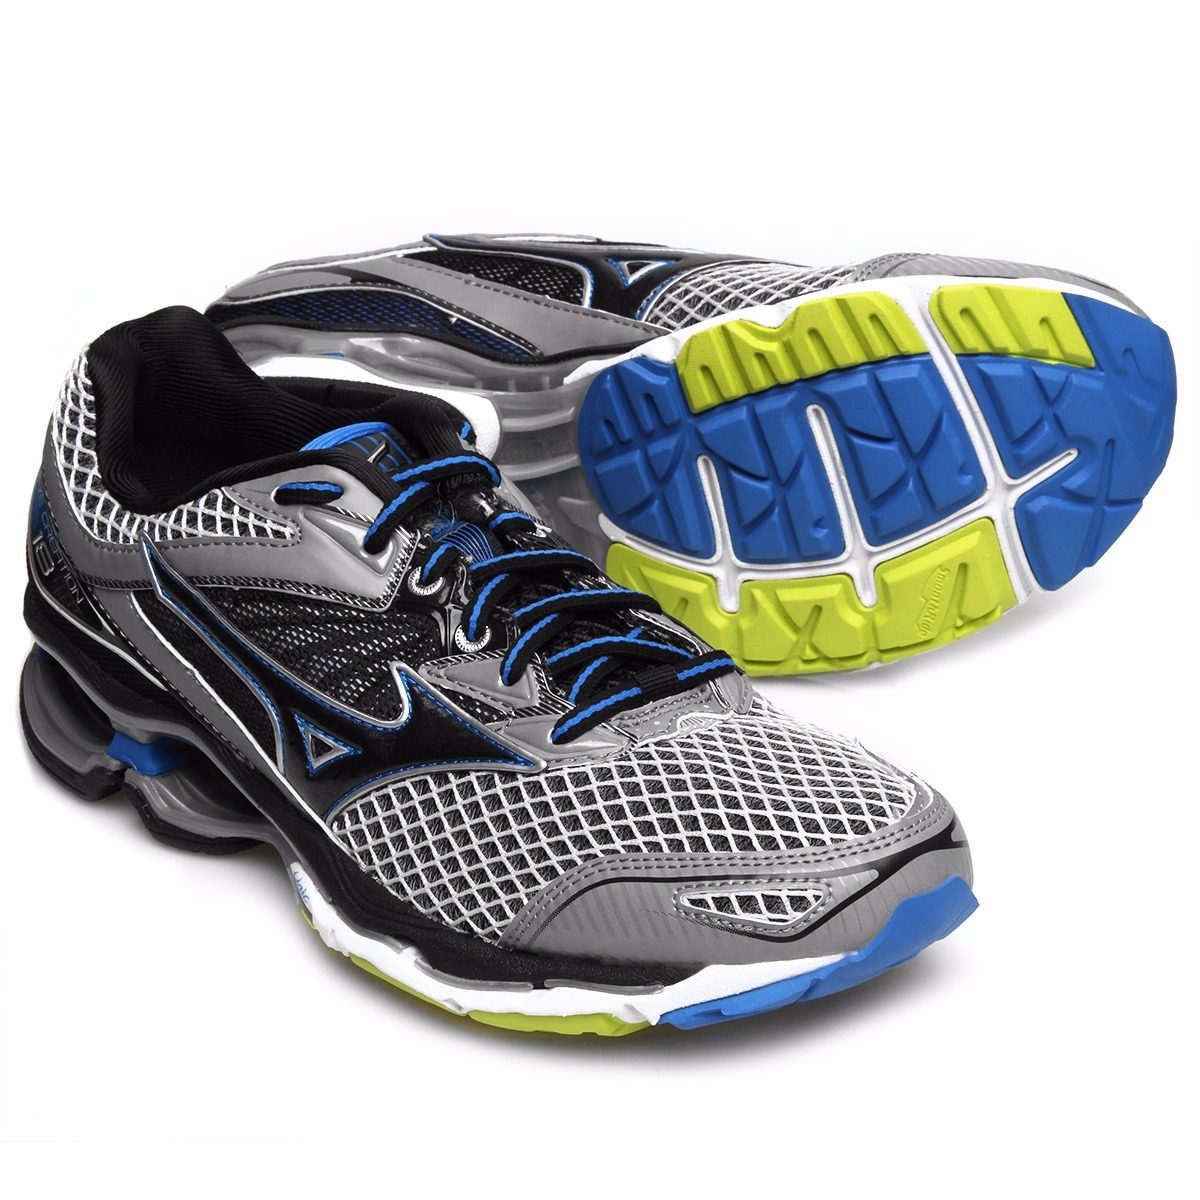 eeb3a85dec504 tênis mizuno wave creation 18 - 4136571.2936. Carregando zoom.